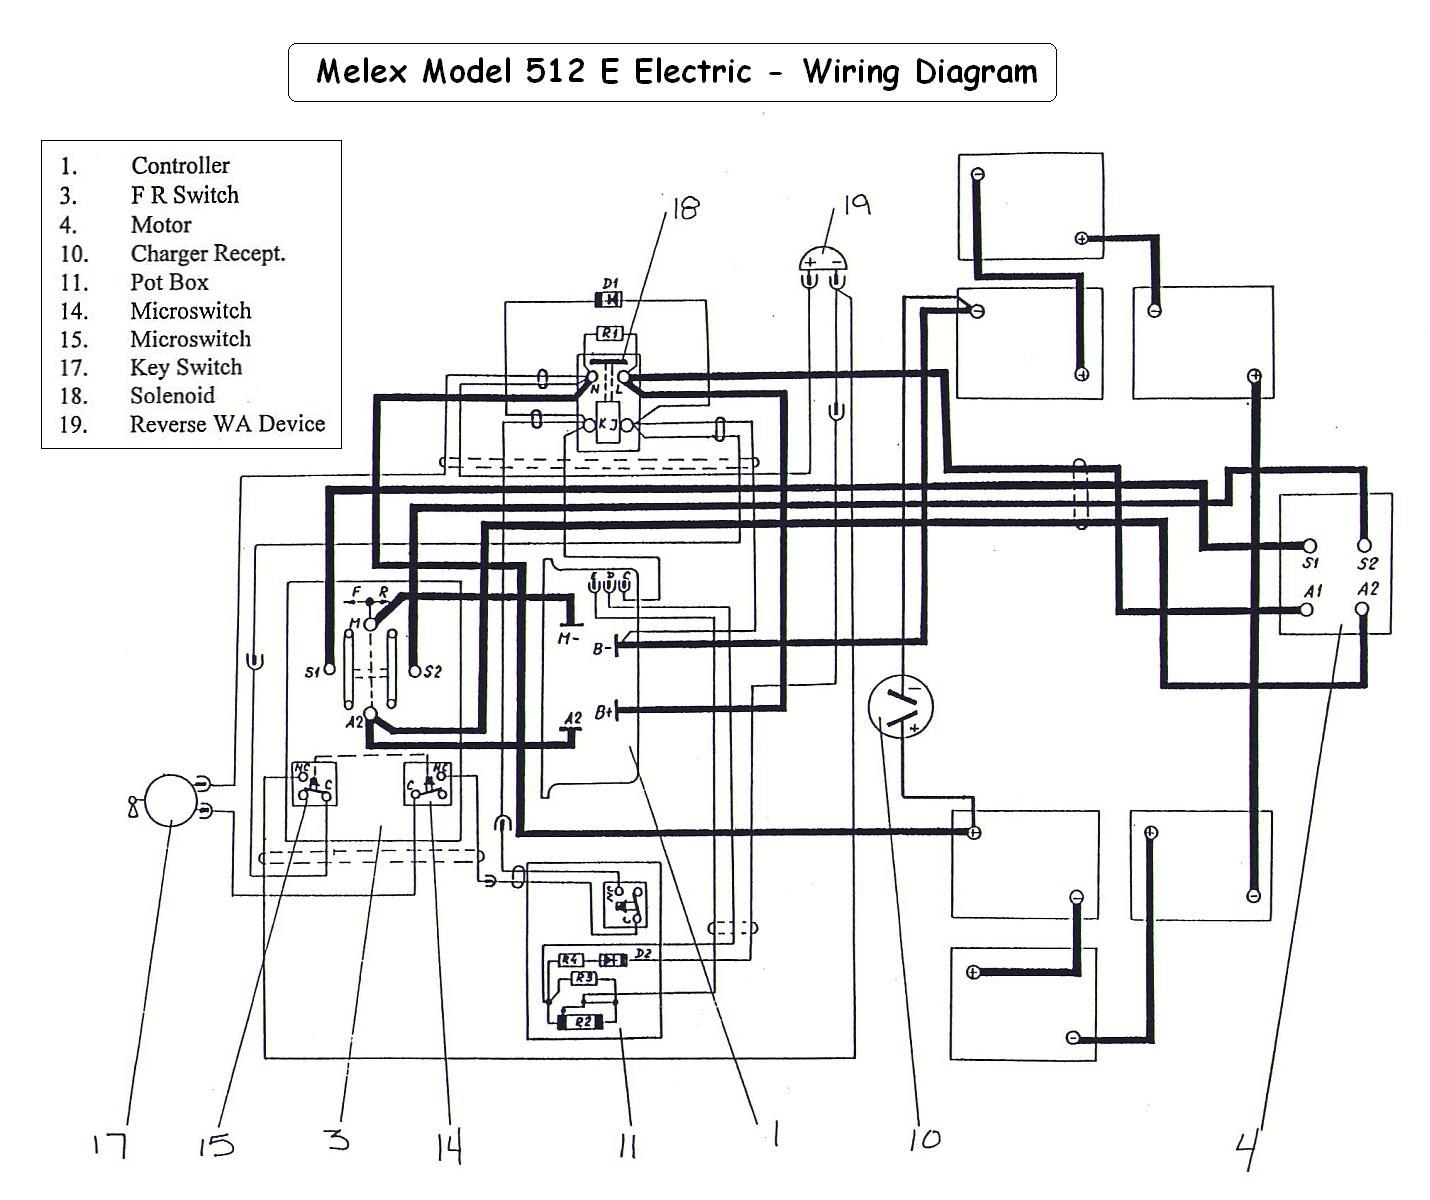 Melex512E_wiring_diagram vintagegolfcartparts com westinghouse golf cart wiring diagram at bakdesigns.co